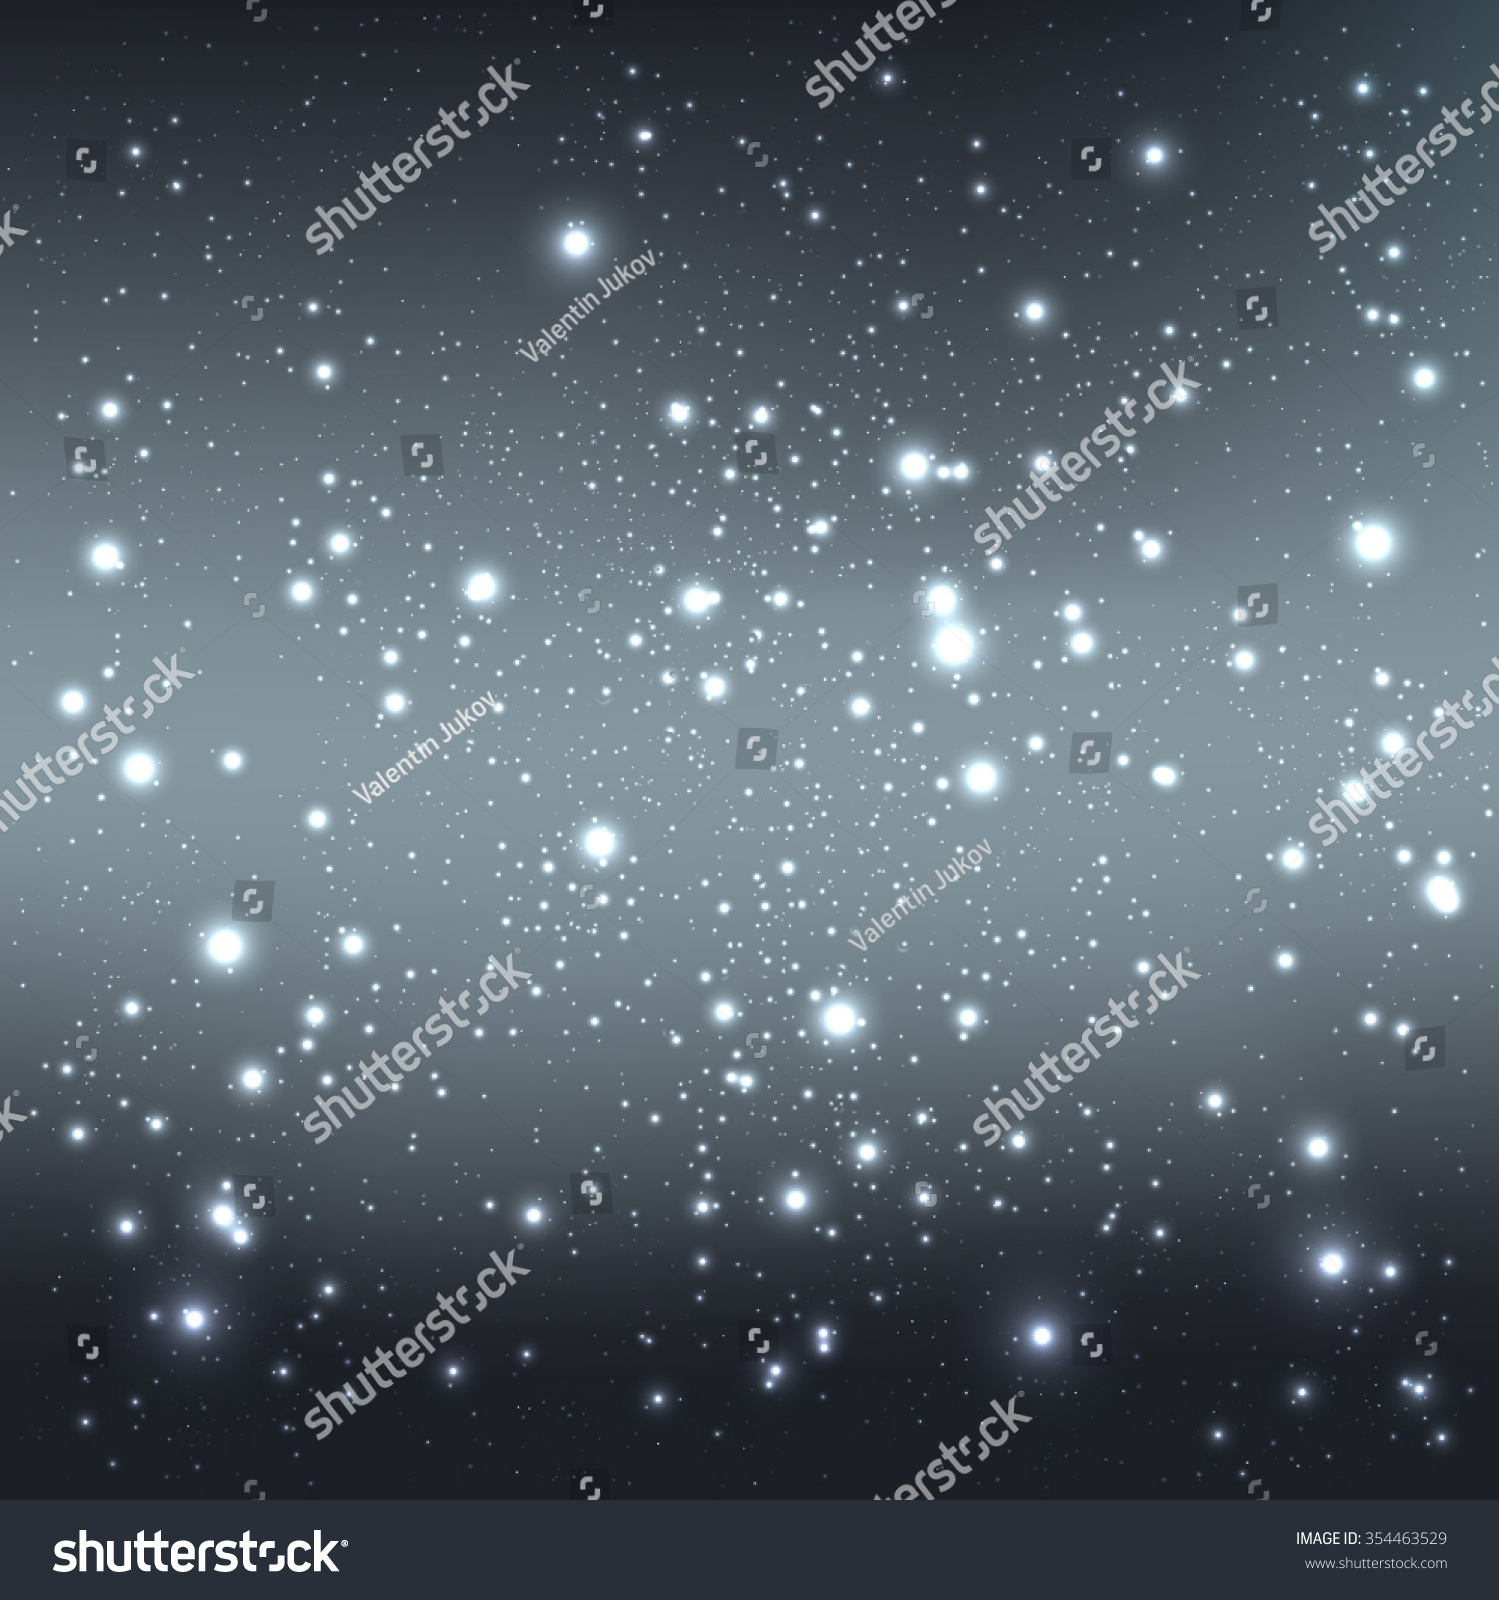 Dark Galaxy Background With Light Stars Vector Illustration Xmas And New Year